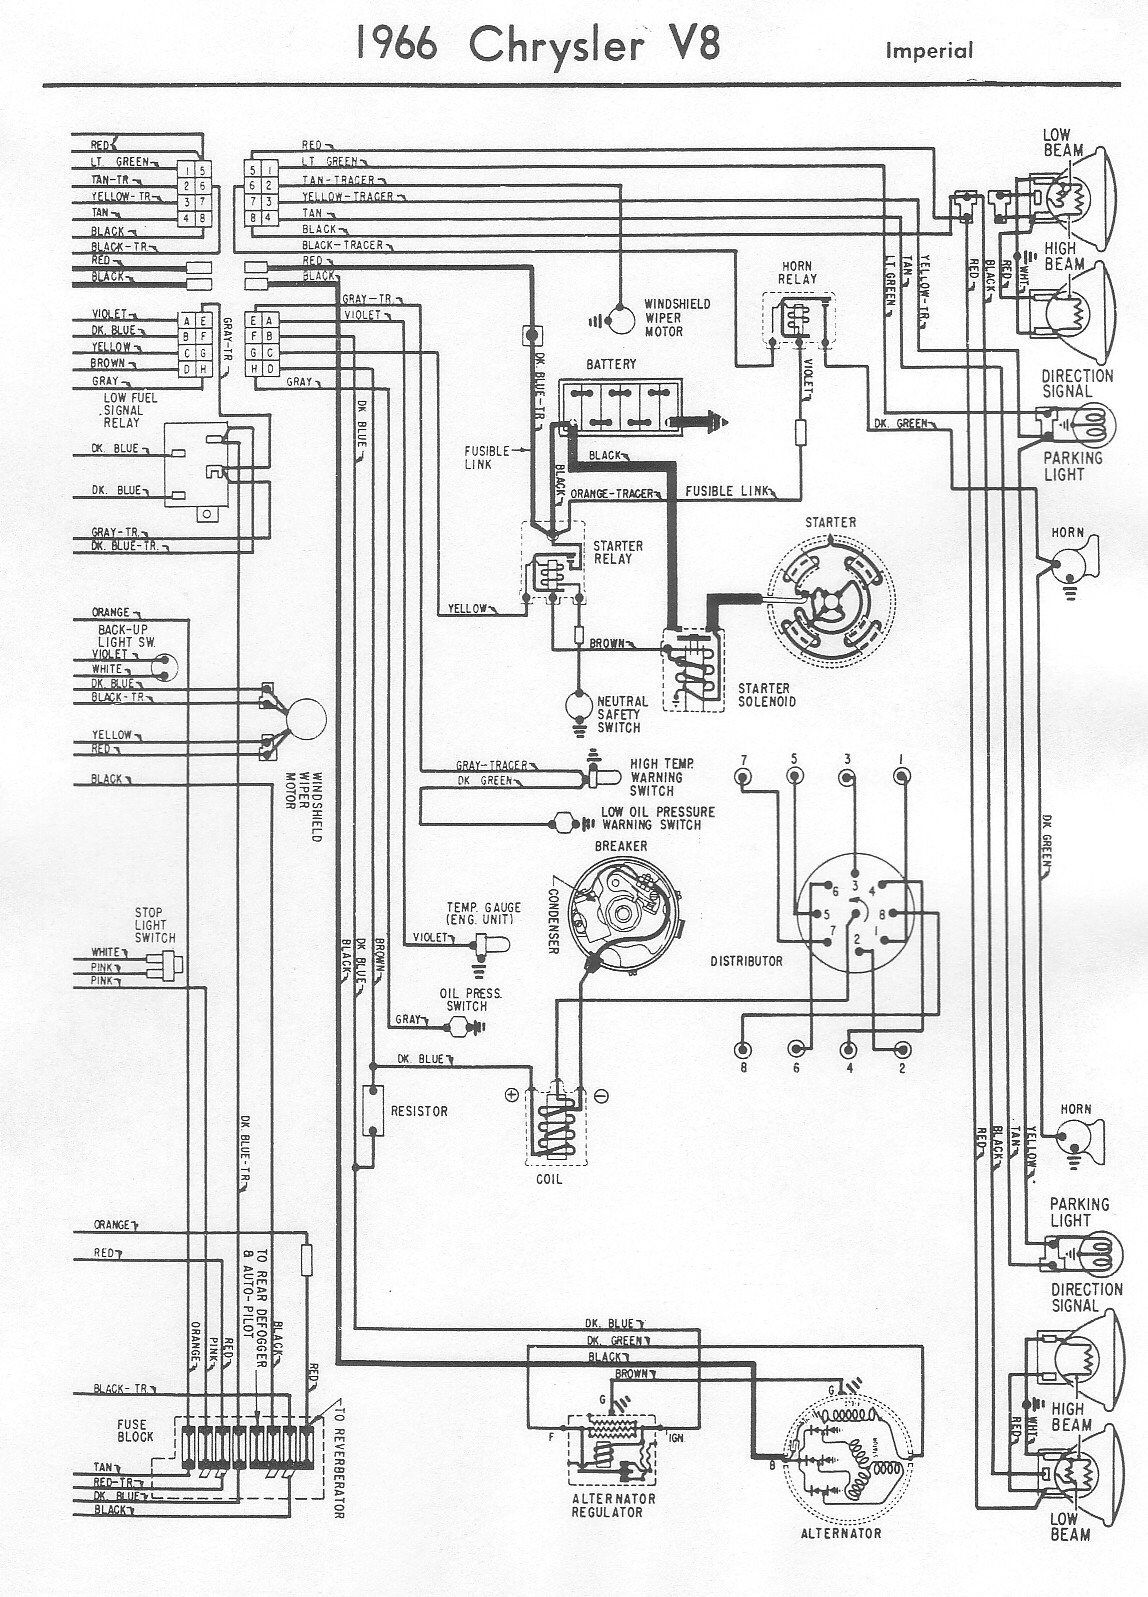 85 camaro dash wiring diagram schematic auto electrical wiring diagram rh  semanticscholar org uk edu bitoku